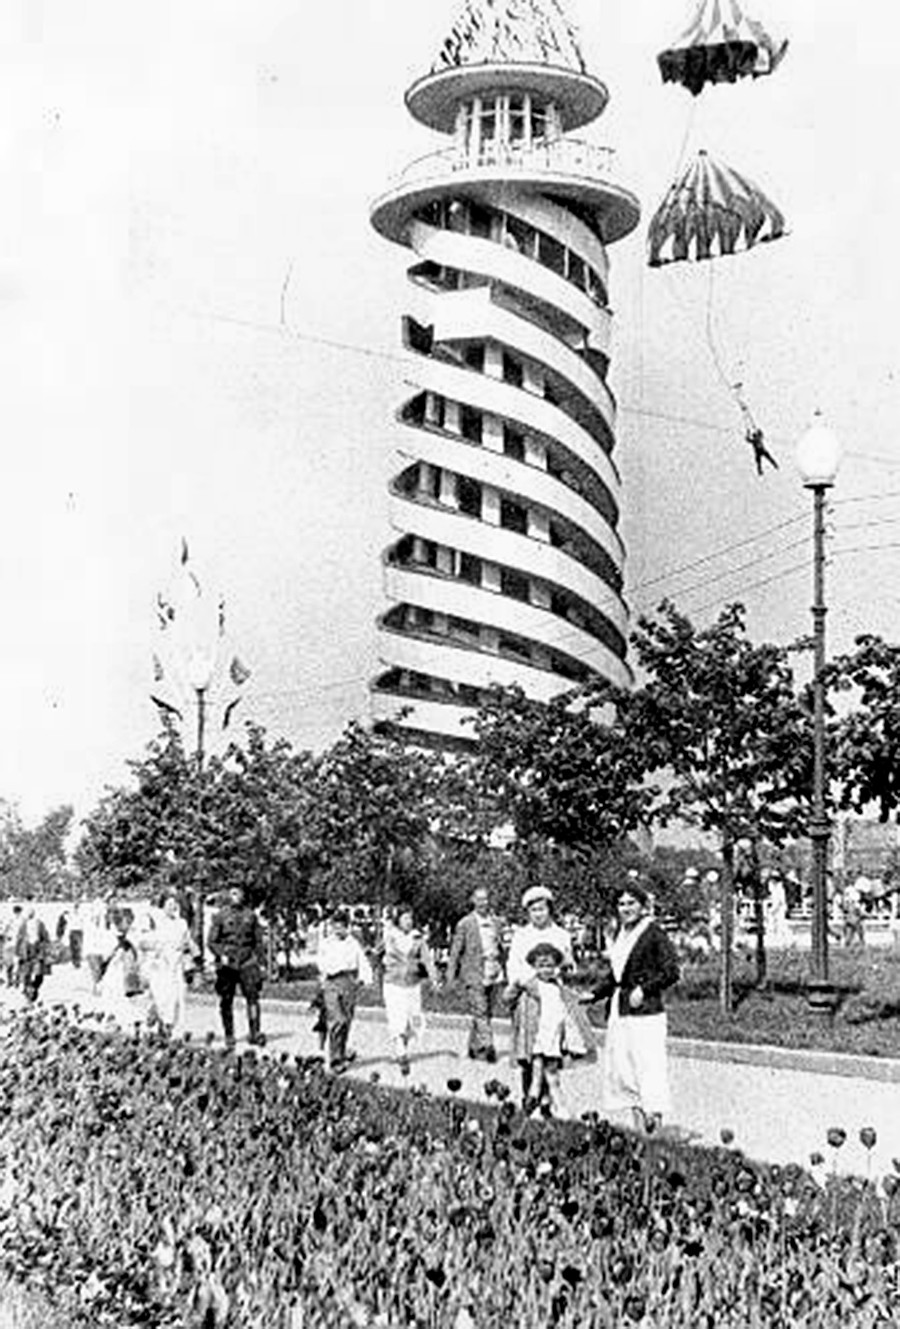 Parachute tower in Gorky Park, 1930s.